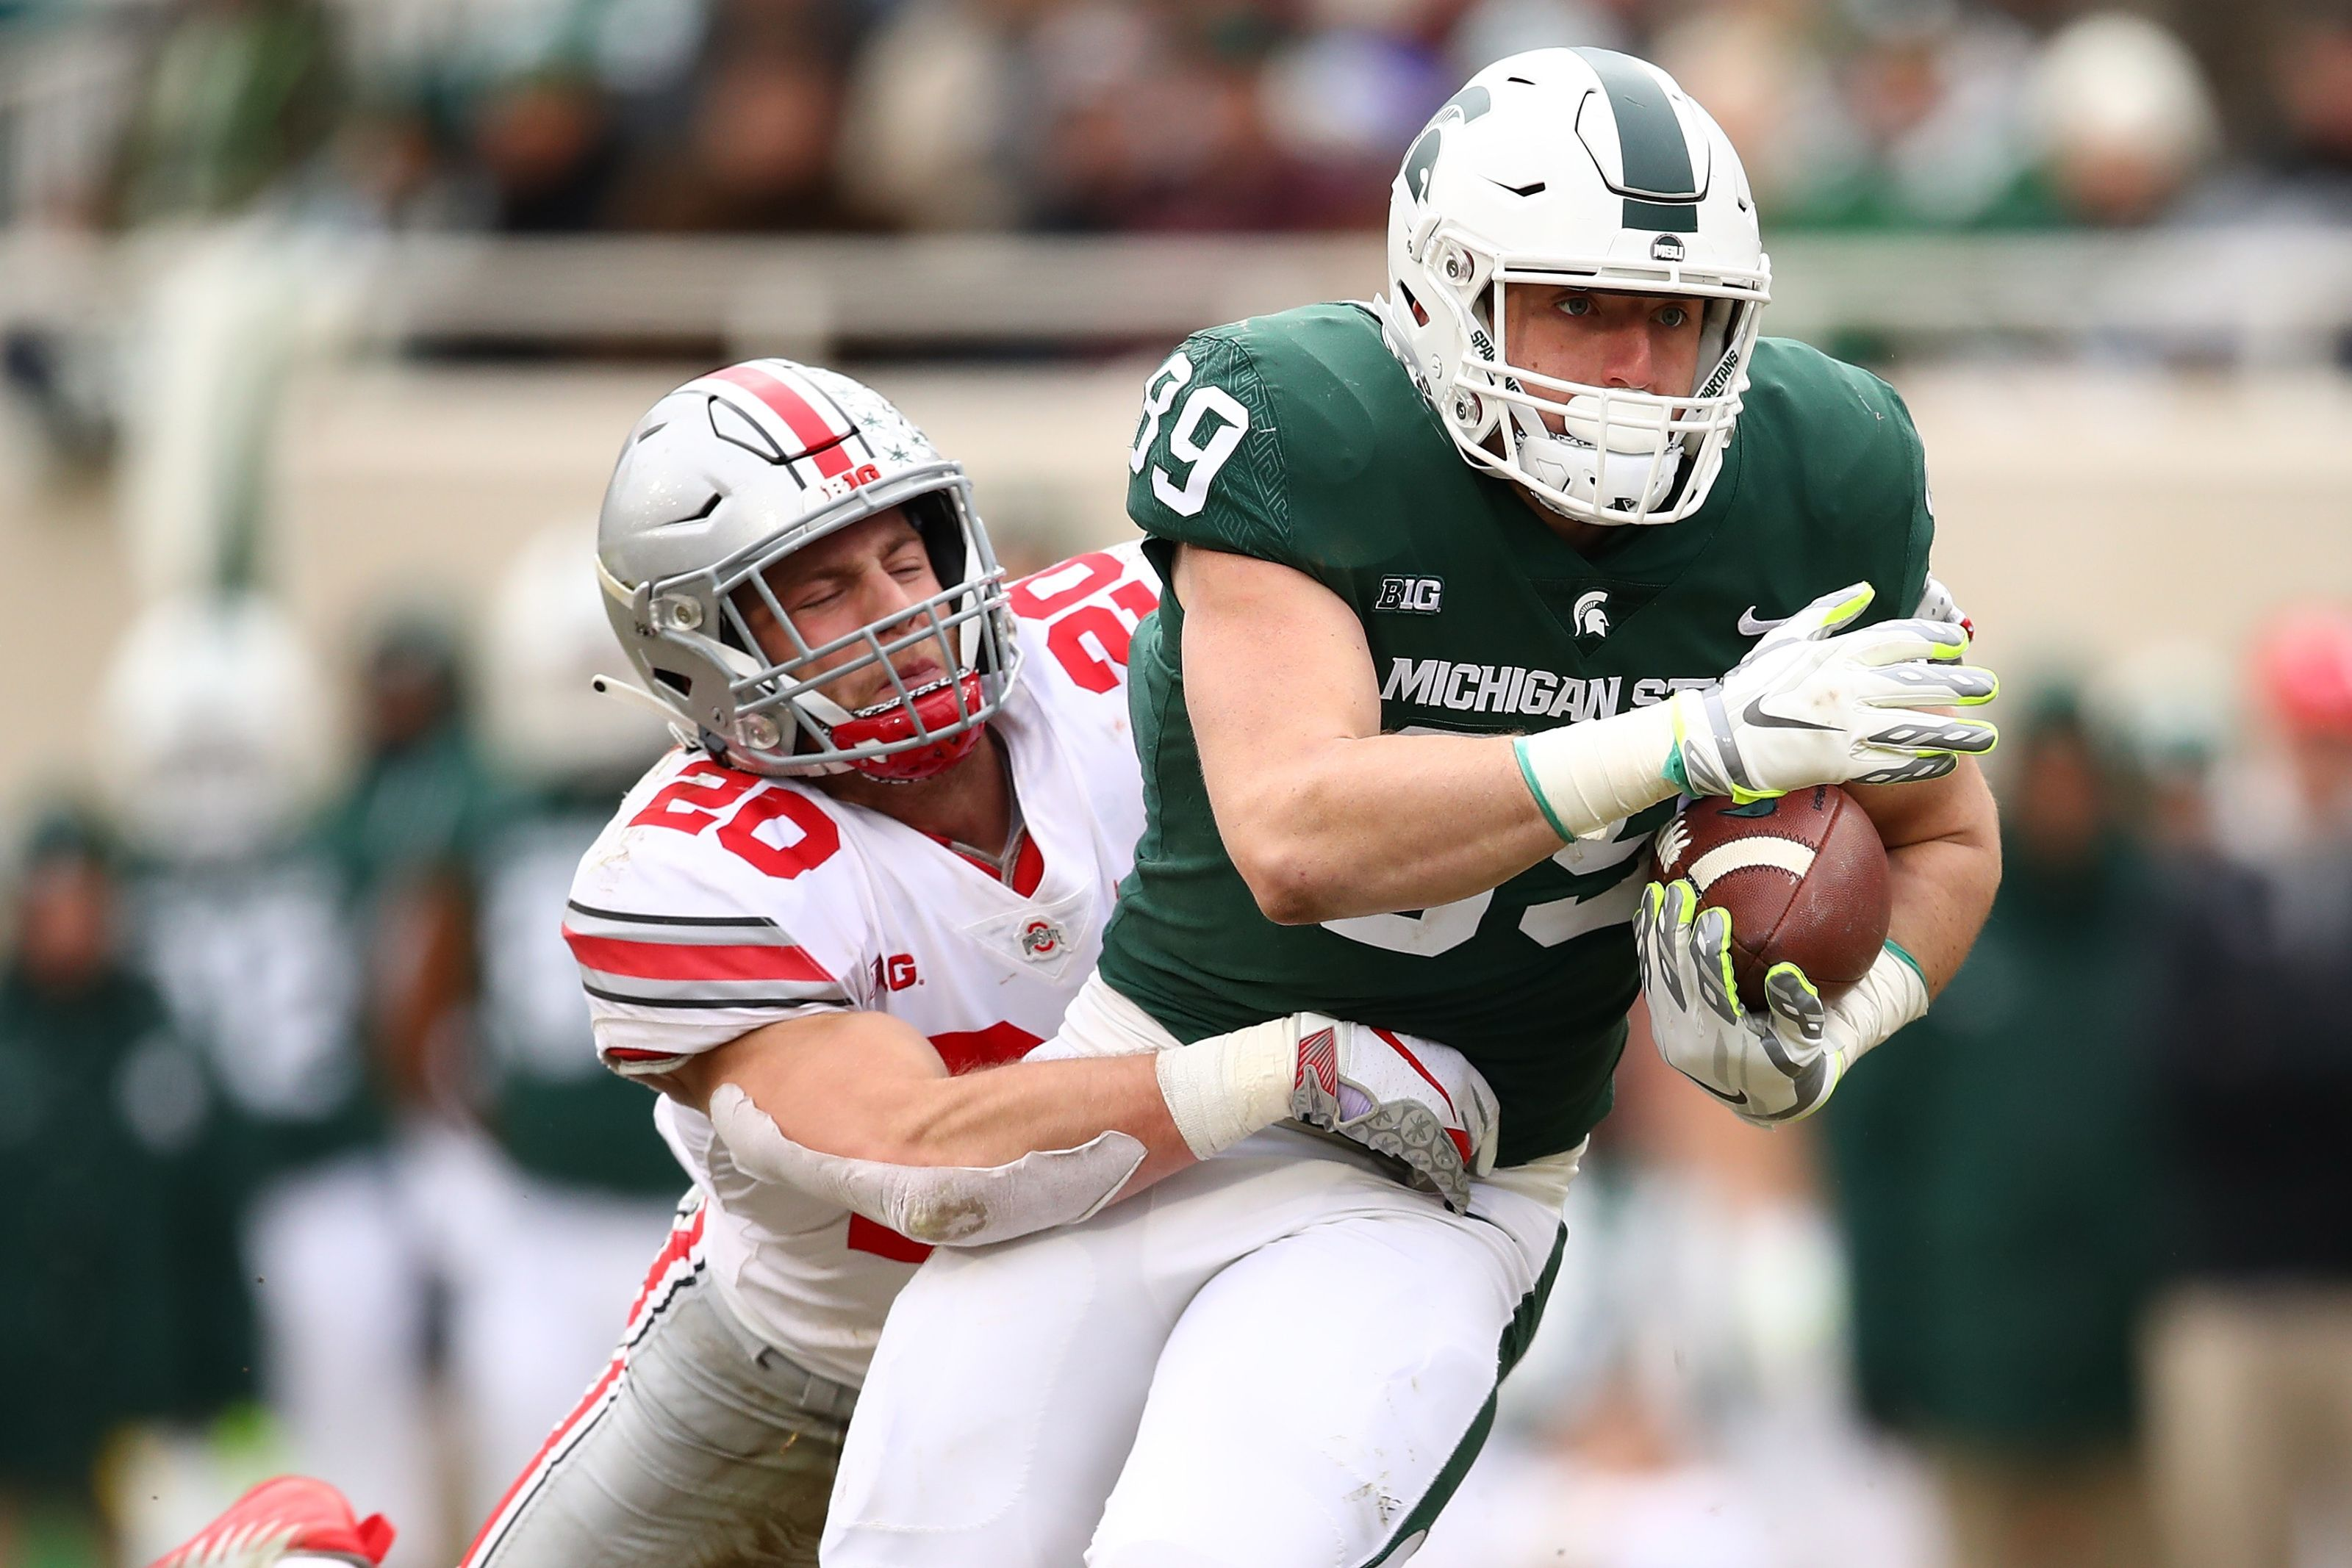 2018 Printable Michigan State Spartans Football Schedule Michigan State Football Michigan State Spartans Football Michigan State